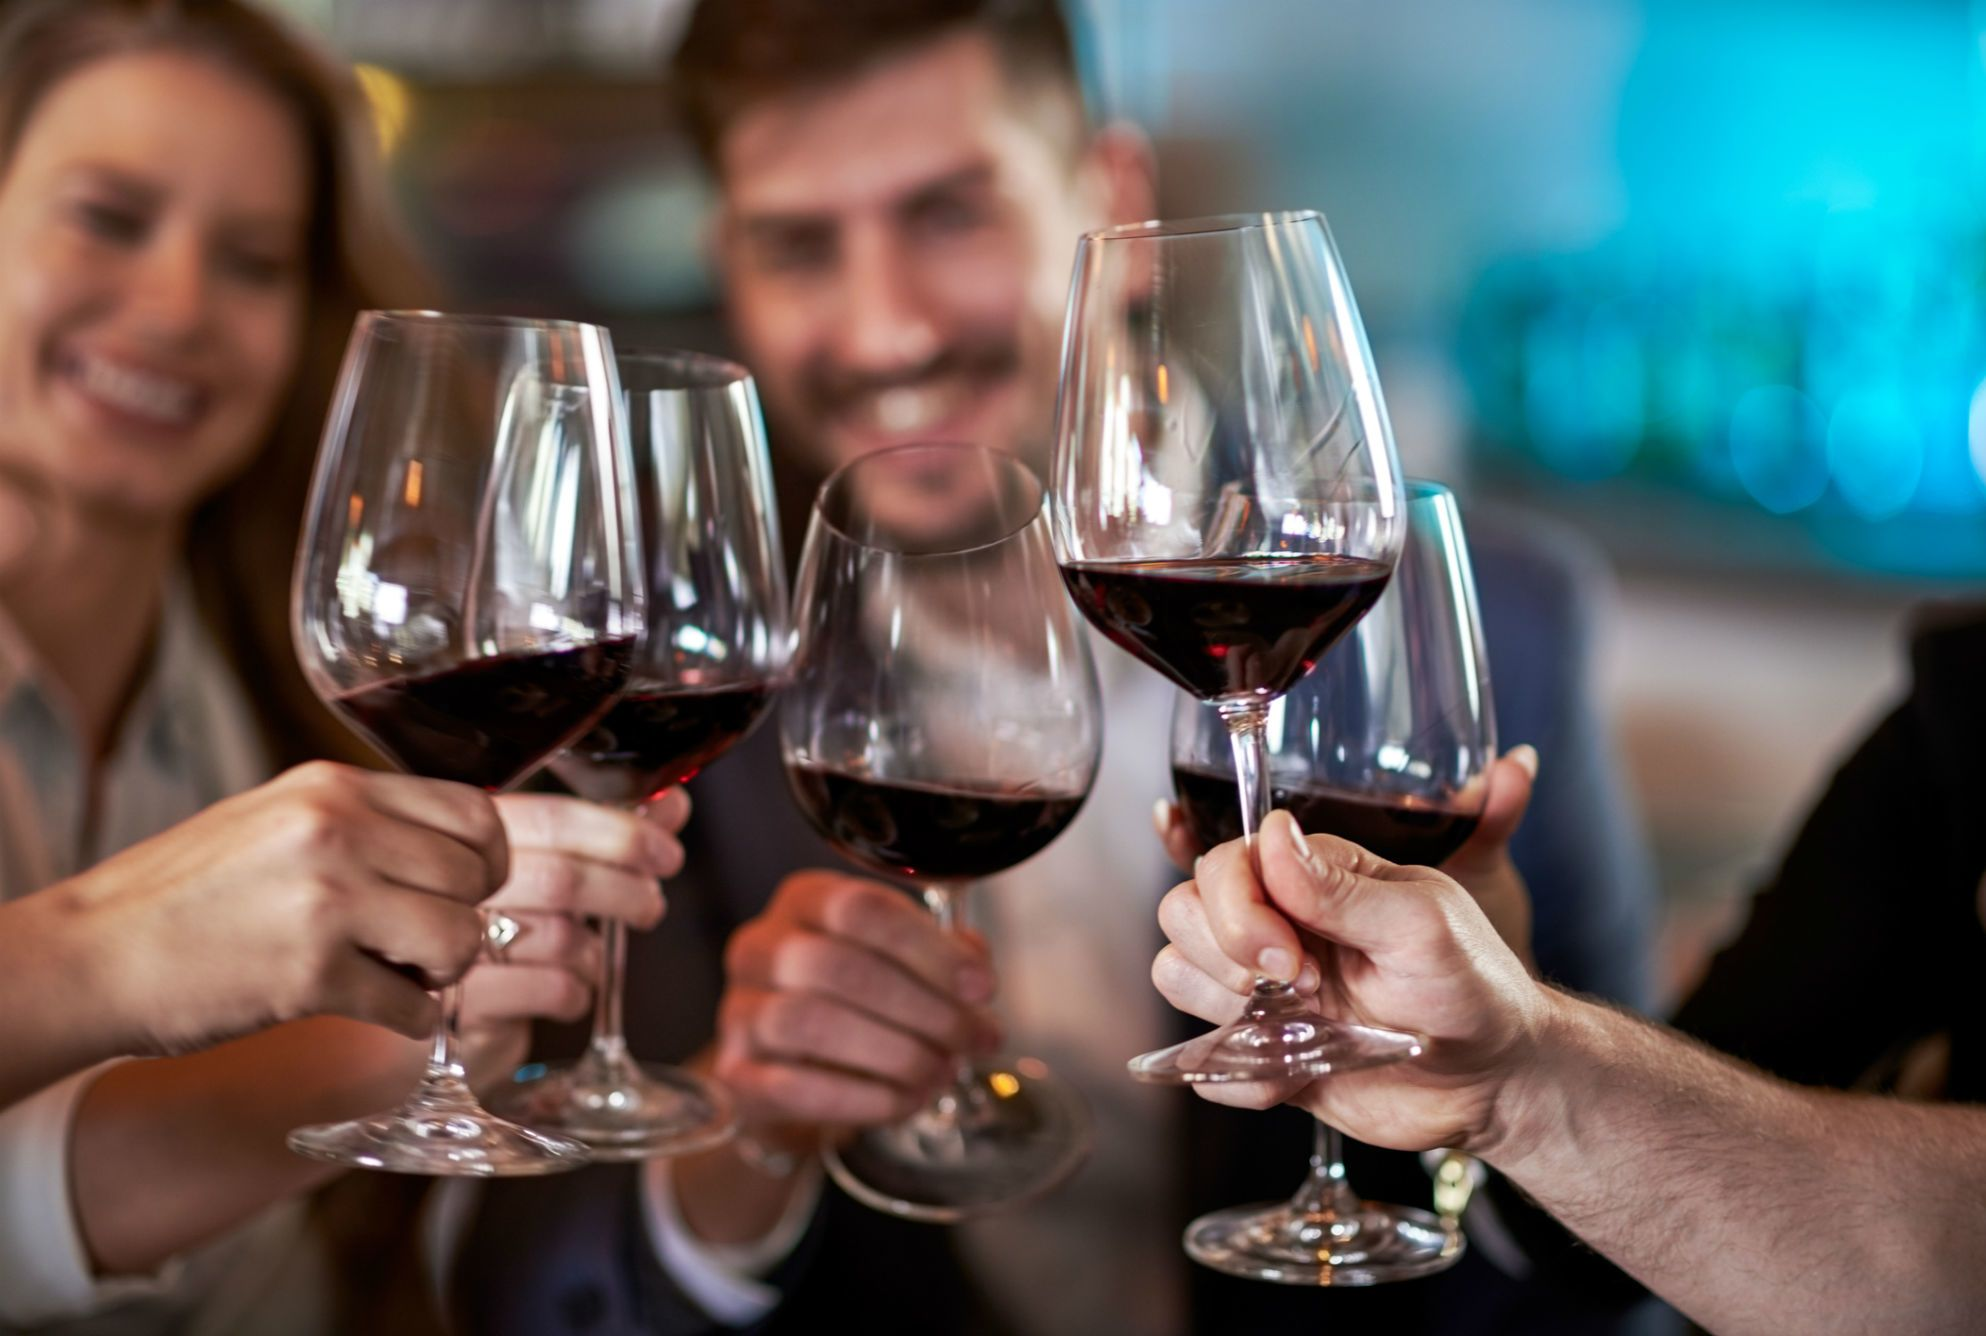 A glass of wine daily is worse for your heart than binge drinking: Finds Study